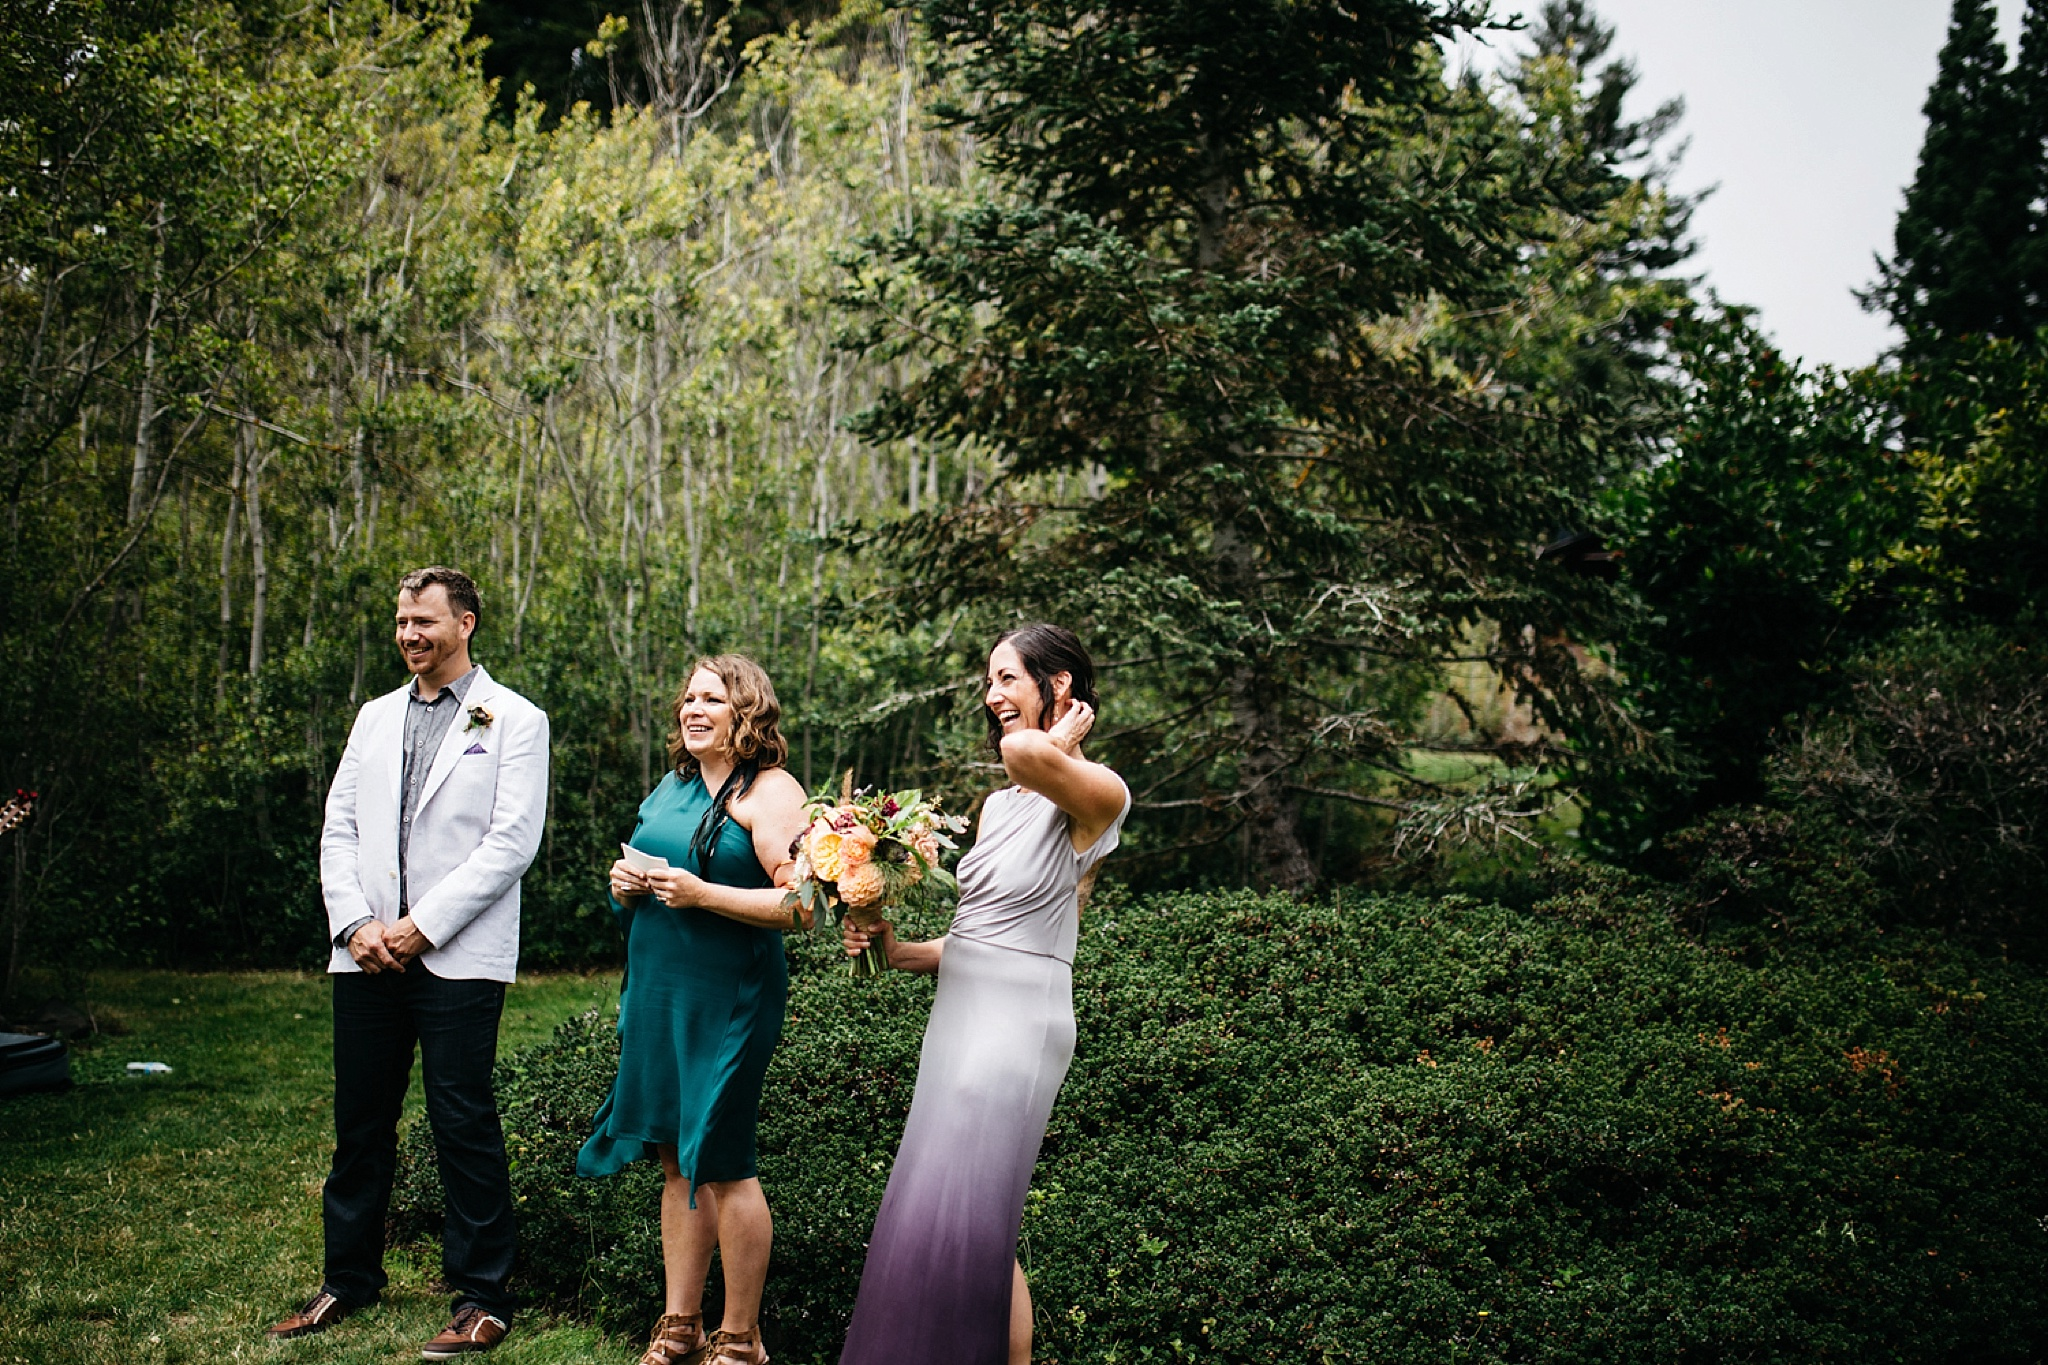 tilden botanical garden wedding in berkeley